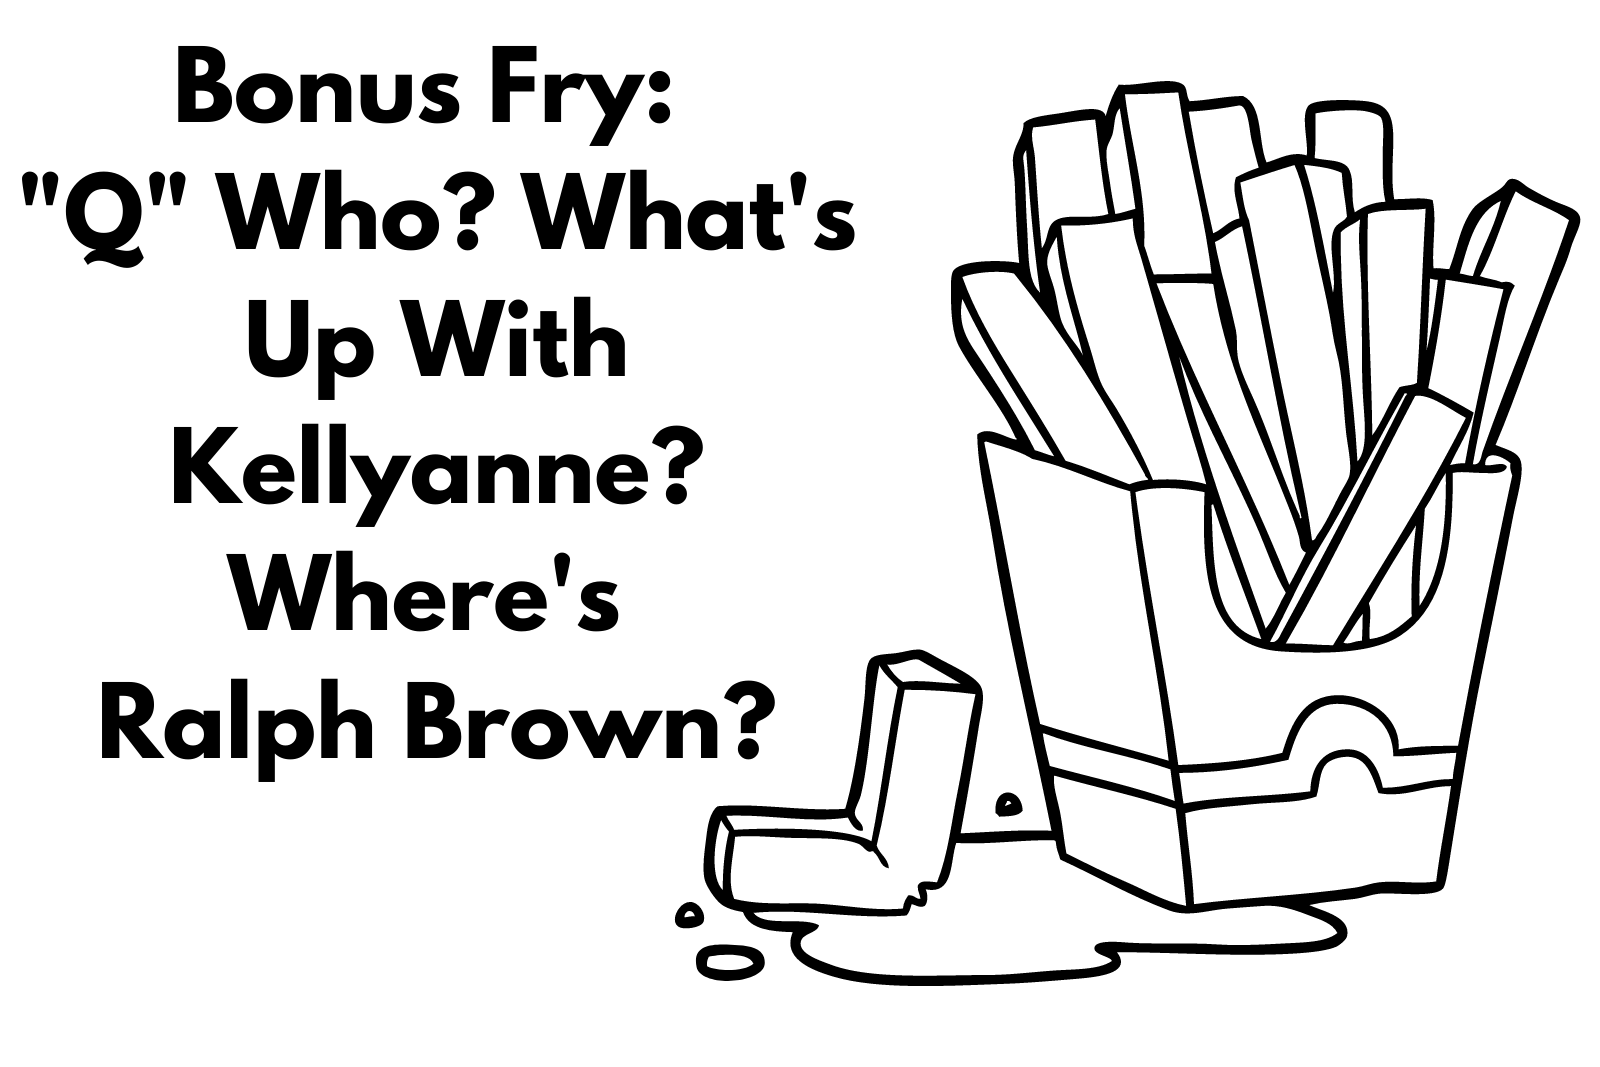 """Q"" Who, What's up with Kellyanne and Where's Ralph?"